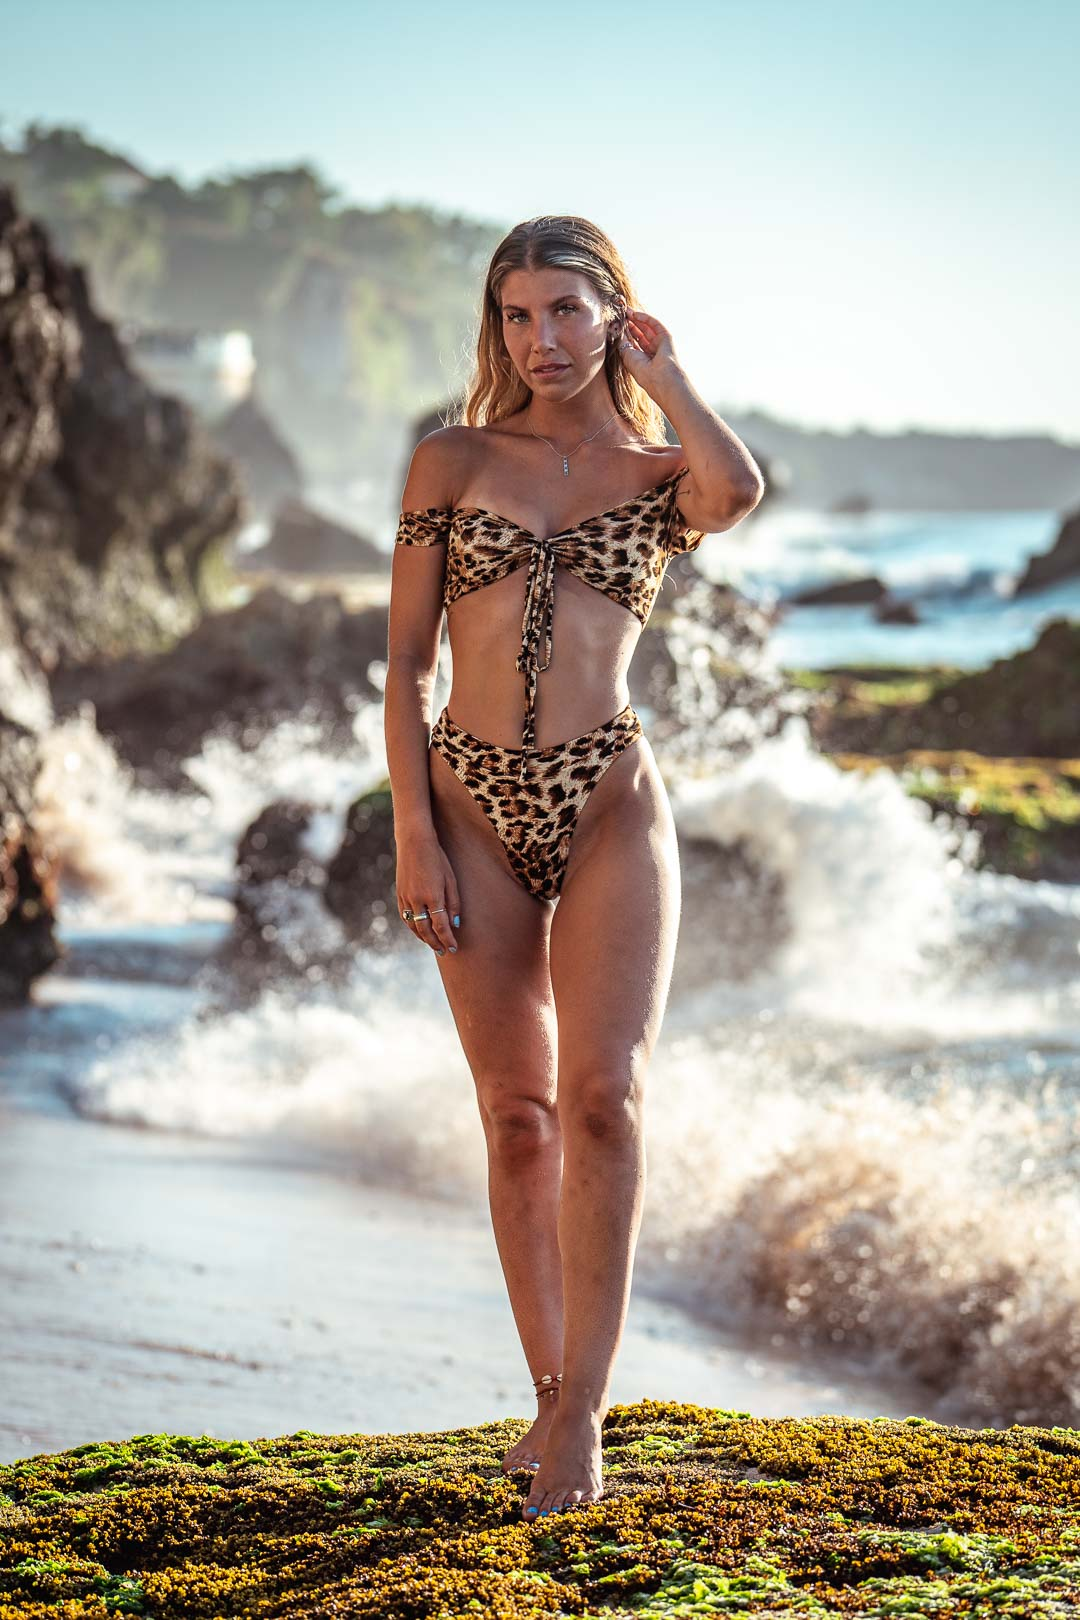 Woman in swimsuit with panther pattern in front of the powerful waves of Uluwatu beach